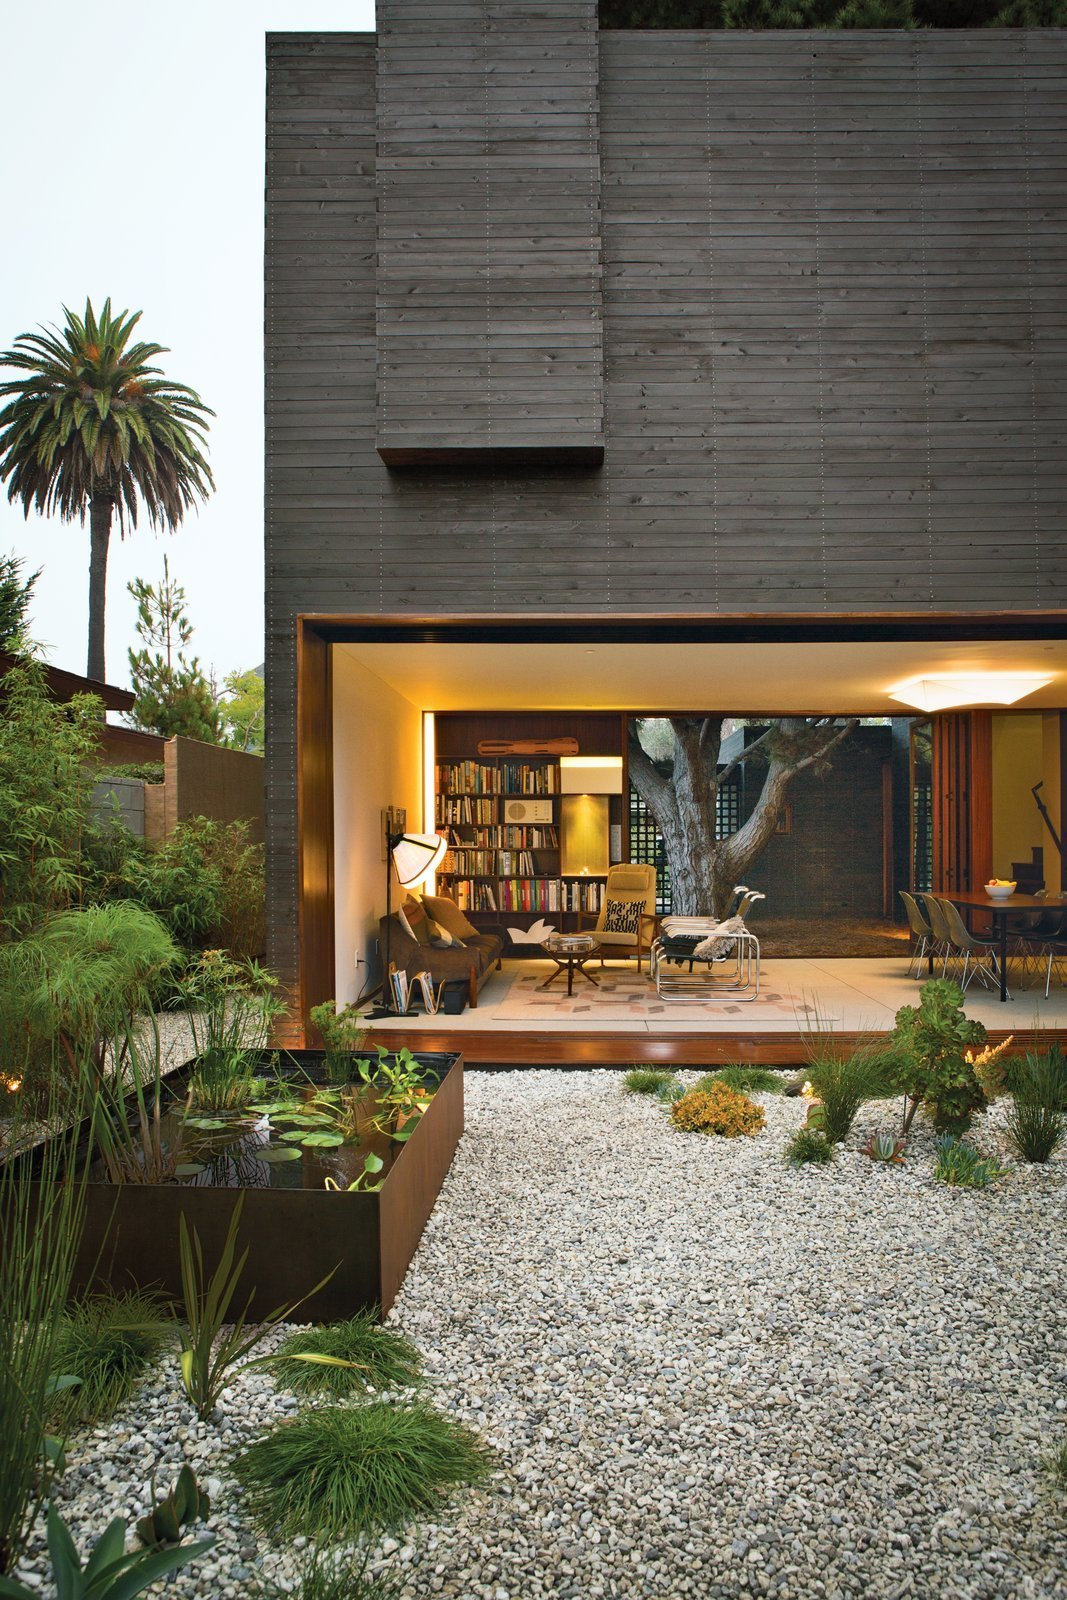 Outdoor, Raised Planters, Back Yard, Trees, Walkways, and Gardens Designed by Boston-based architect Sebastian Mariscal, this house, which celebrates the best of Californian indoor-outdoor living, was designed to frame views of the trees and the surrounding landscape.  Photos from 10 Best Modern Homes in Venice Beach, California